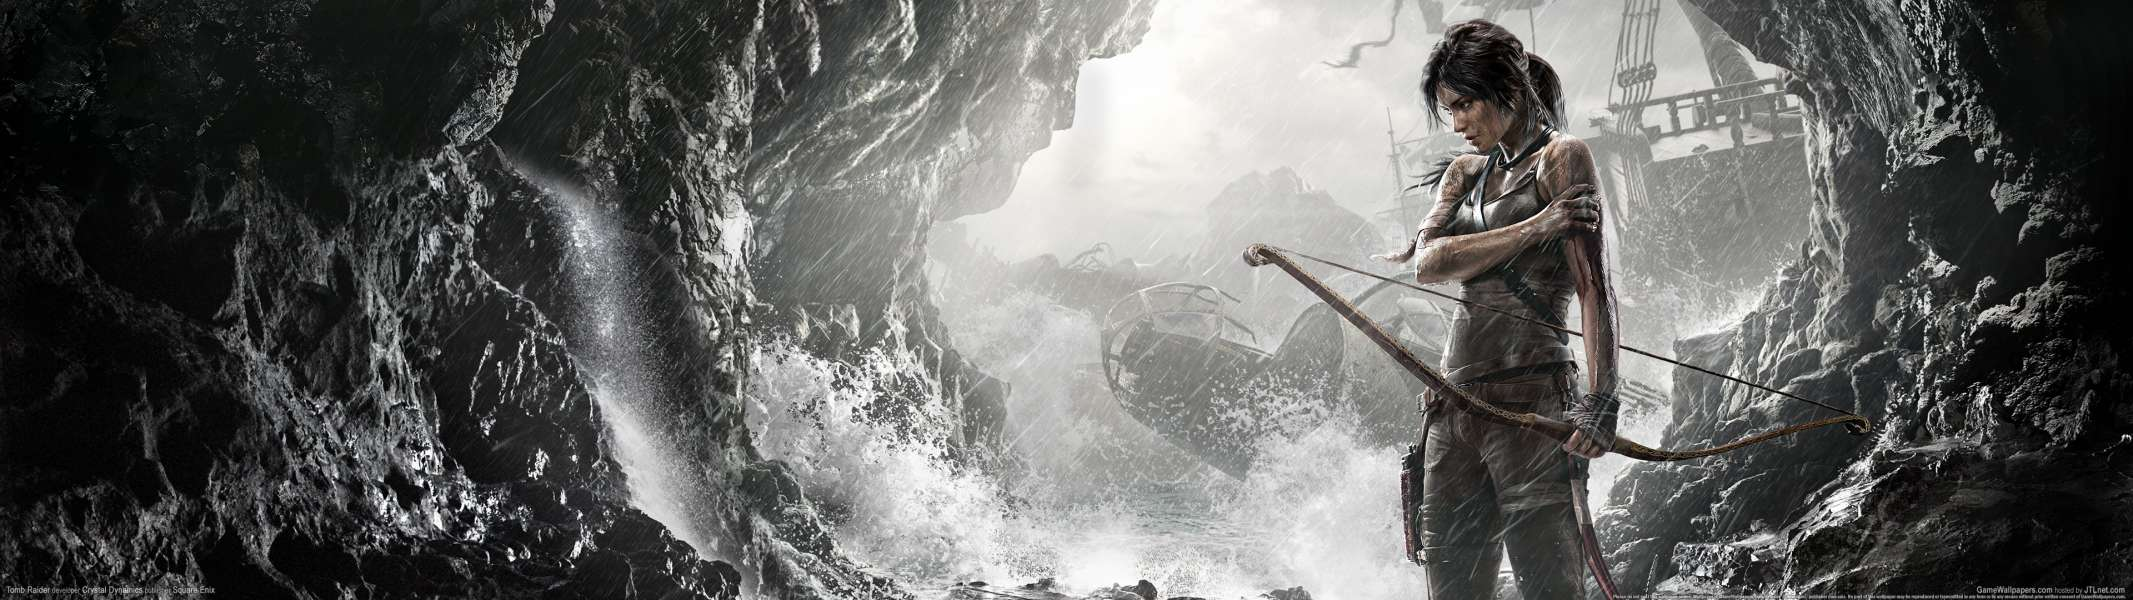 Tomb Raider dual screen fondo de escritorio